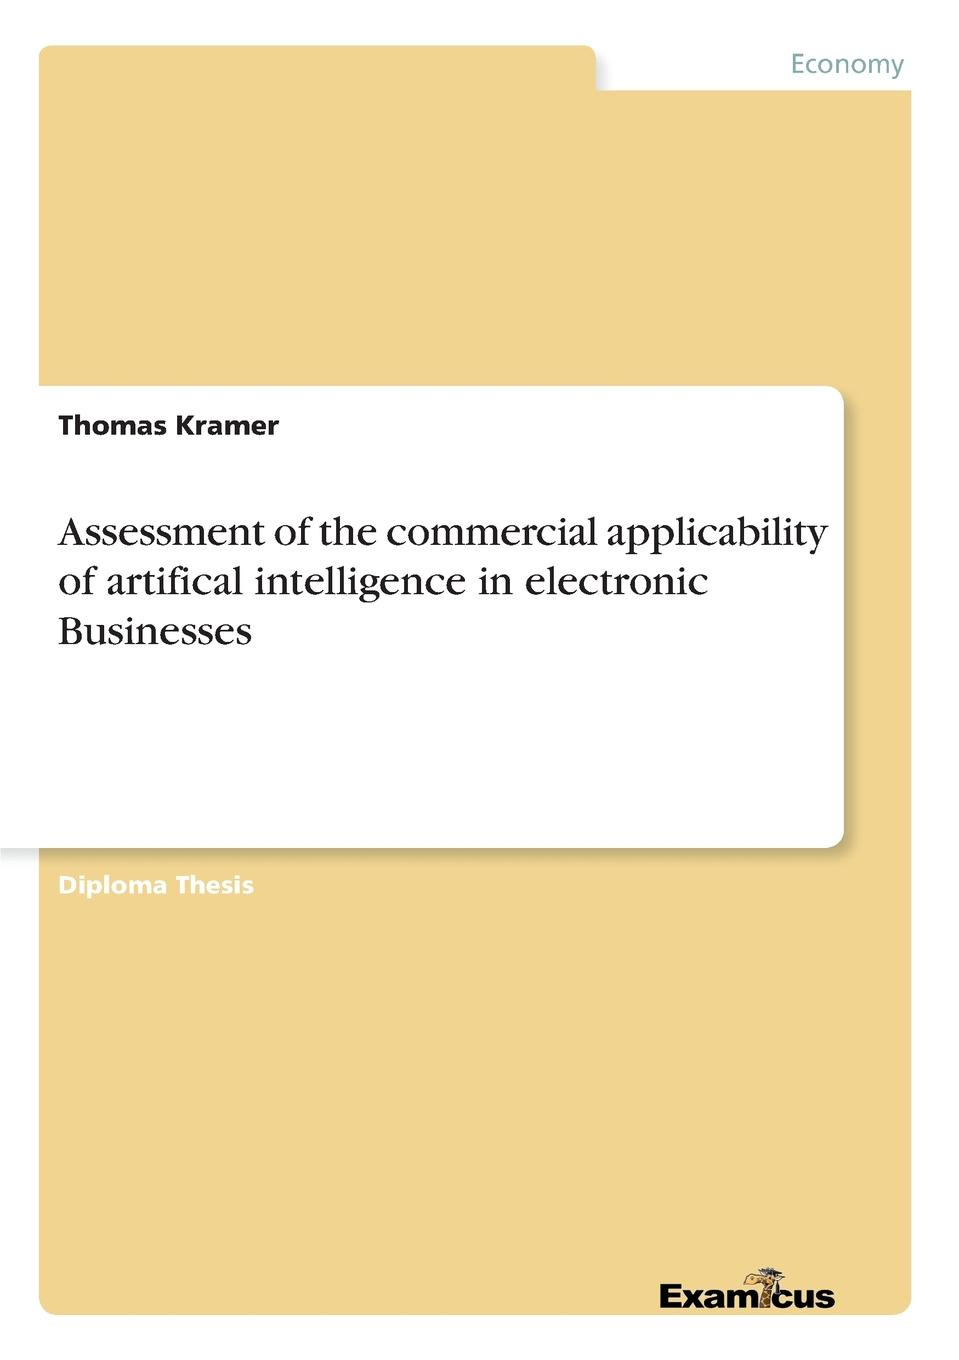 Фото - Thomas Kramer Assessment of the commercial applicability of artifical intelligence in electronic Businesses zhang honggang cognitive communications distributed artificial intelligence dai regulatory policy and economics implementation isbn 9781118360323